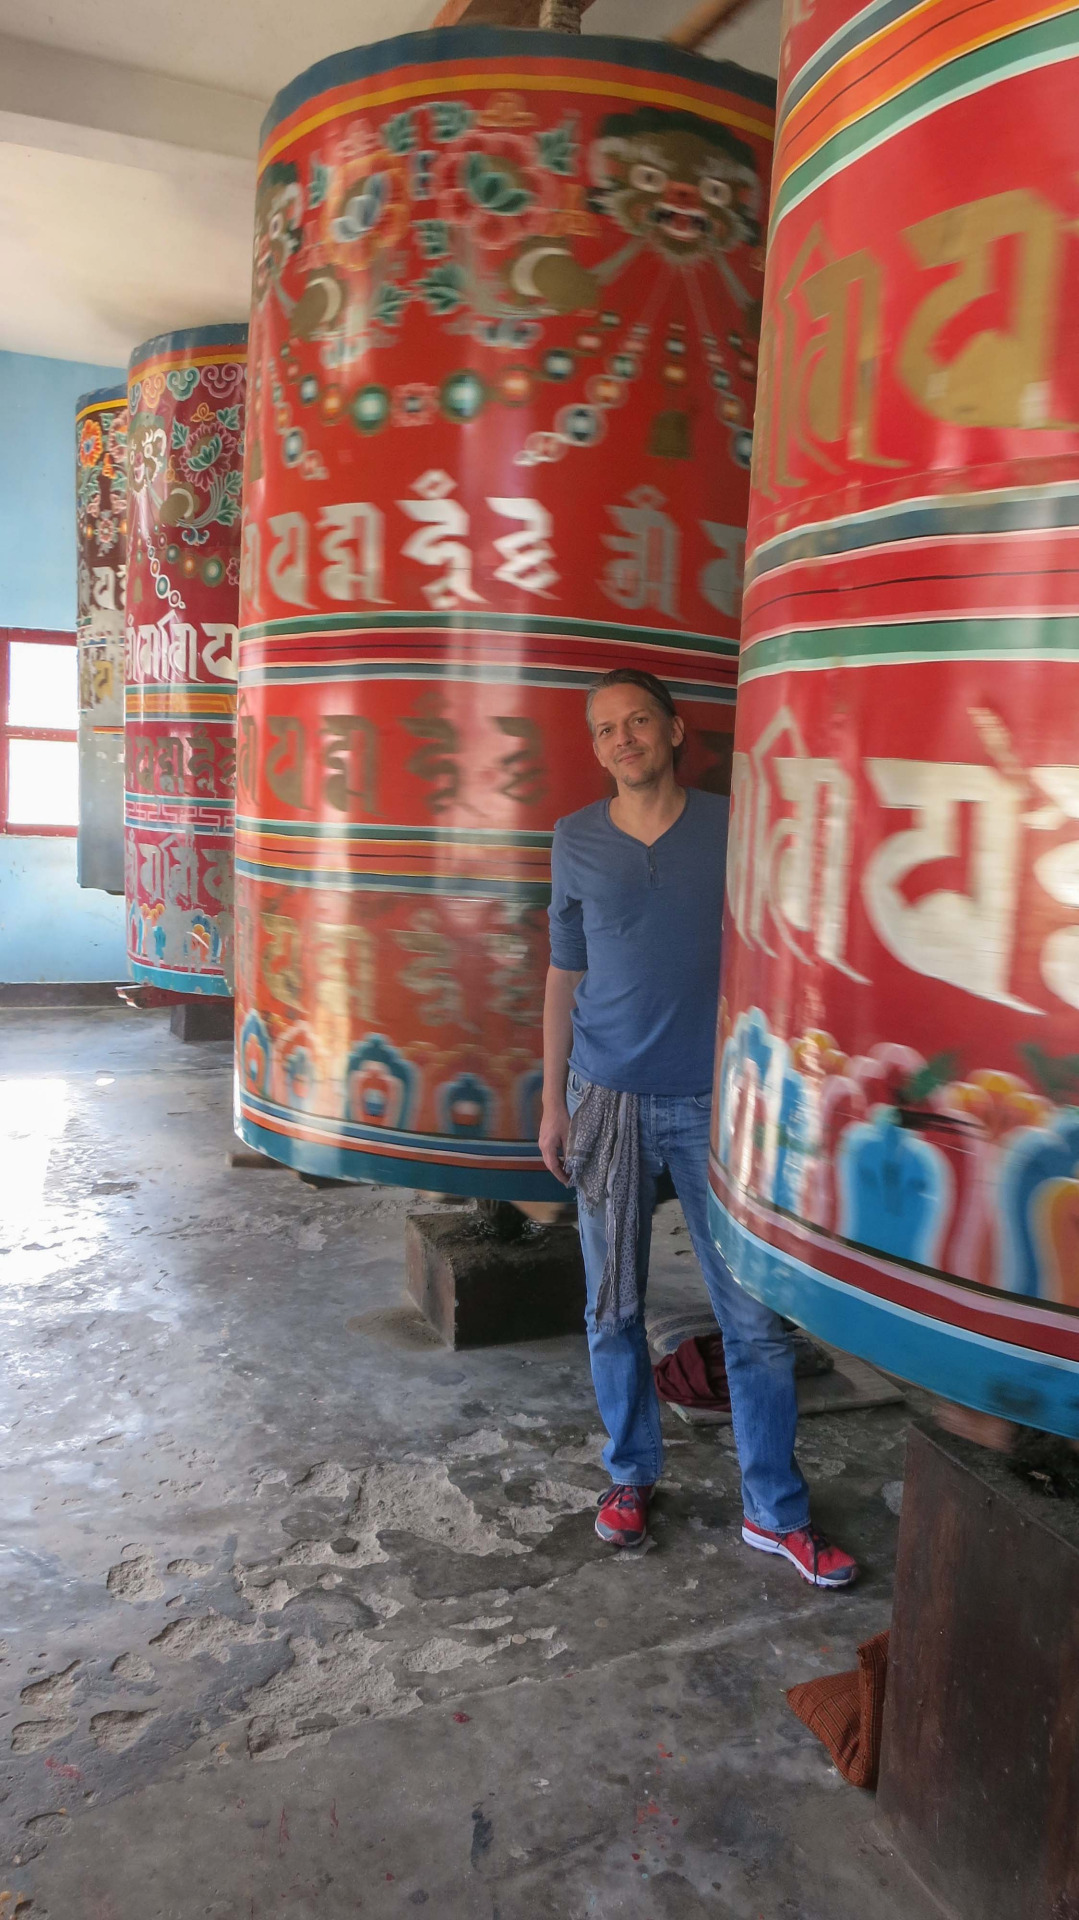 Turning the prayer wheel